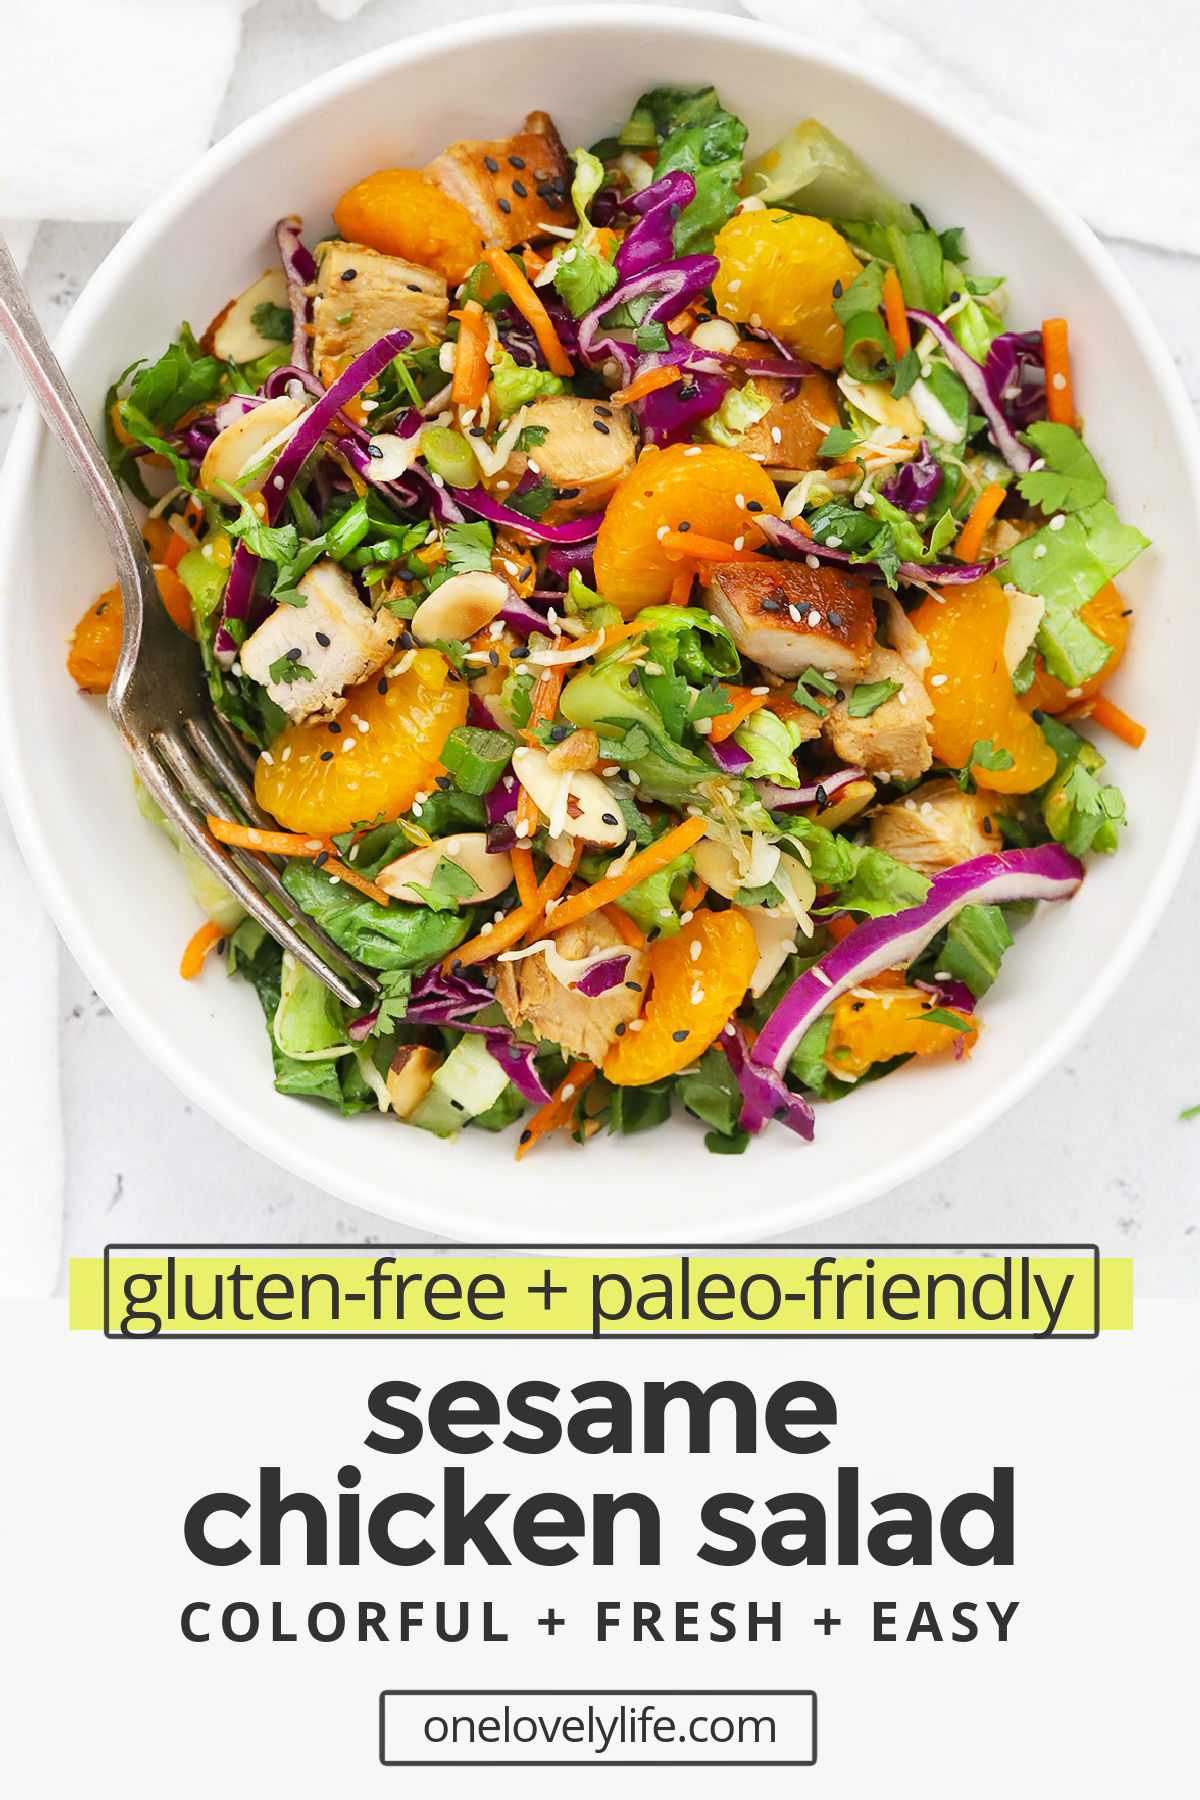 Sesame Chicken Salad - With tender sesame marinated chicken, colorful veggies, and a delicious sesame dressing, this sesame chicken salad is one of our favorite healthy dinners! (Gluten-Free, Paleo-Friendly) // Healthy sesame chicken salad // paleo sesame chicken salad // main dish salad // dinner salad // healthy dinner // healthy lunch #salad #healthydinner #glutenfree